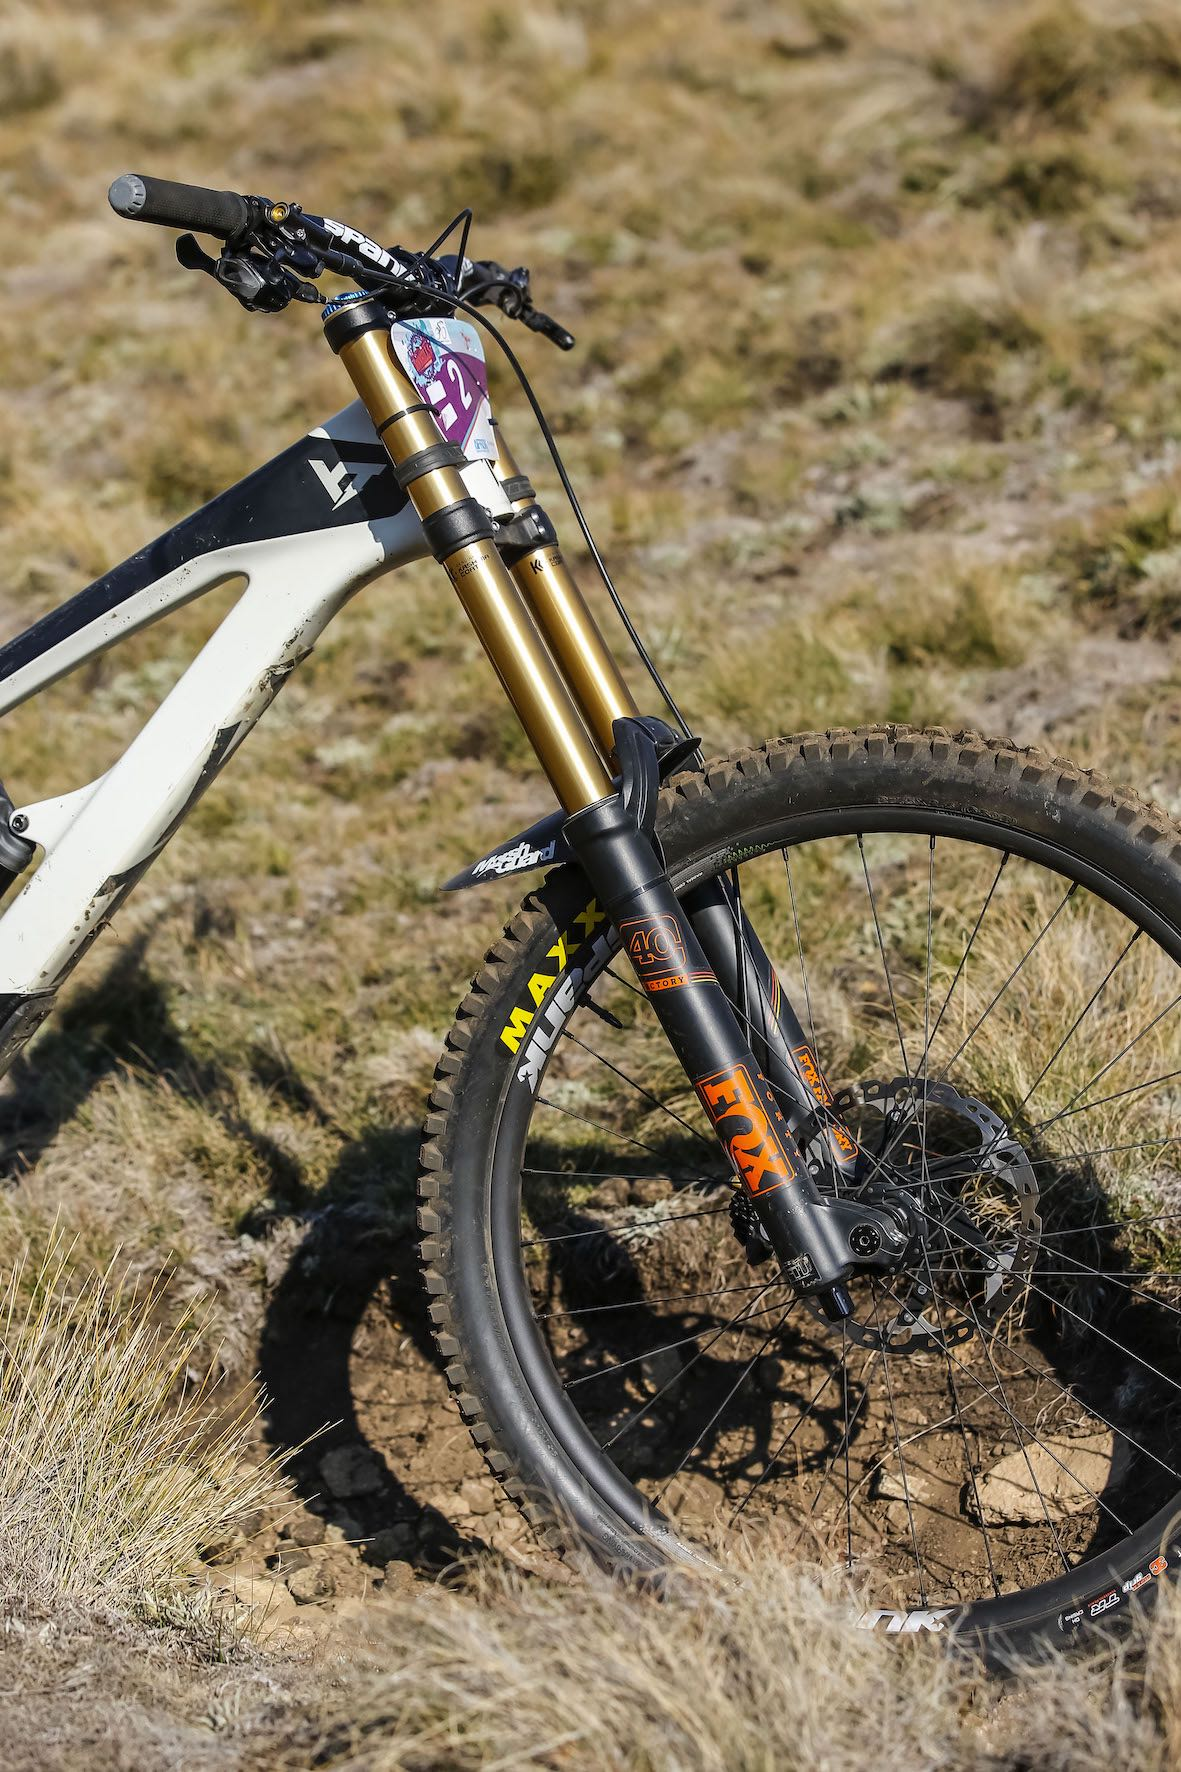 Theo Erlangsen talks Downhill Mountain Biking and defending his South African title